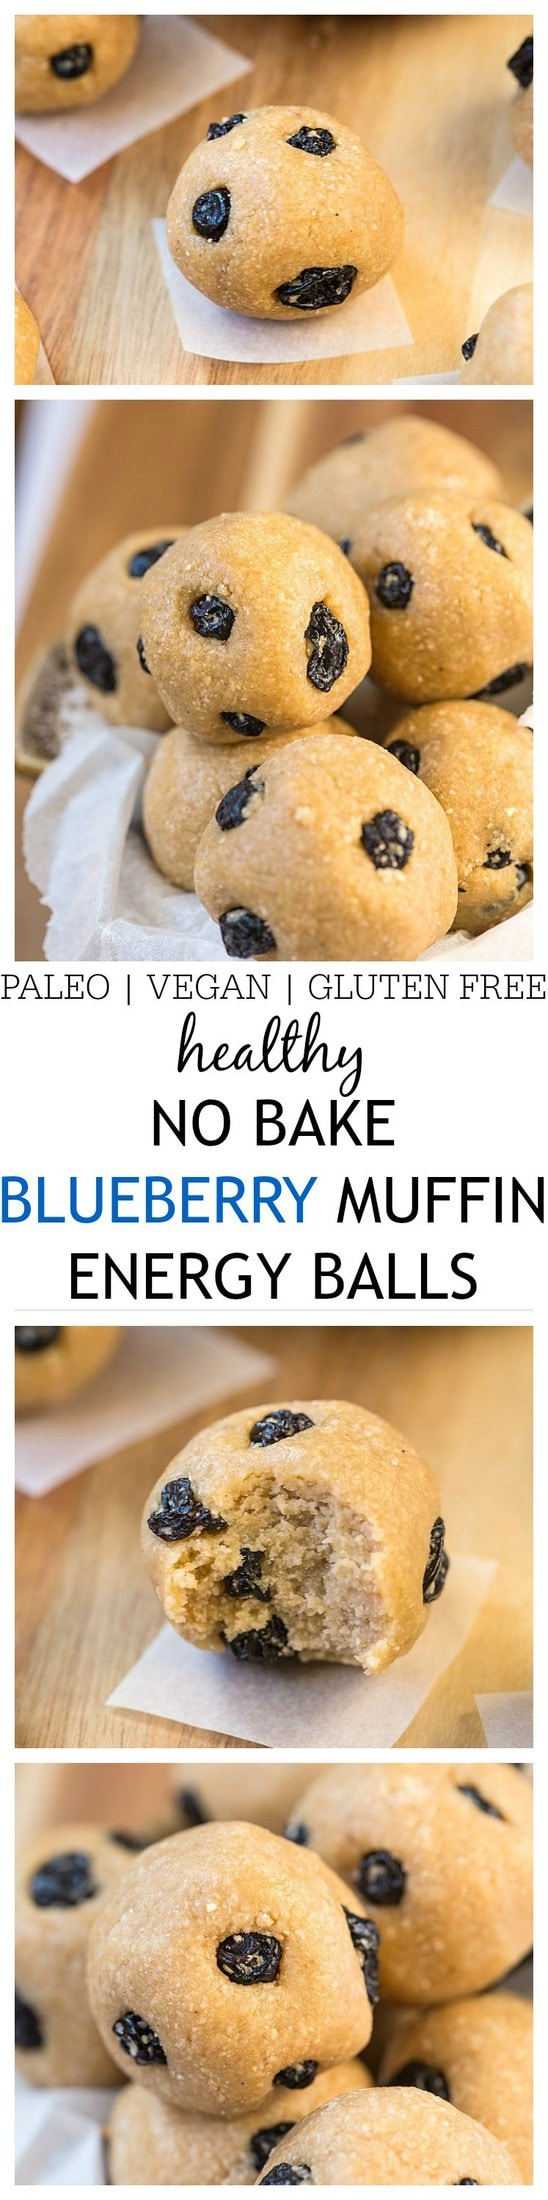 Healthy No Bake Blueberry Muffin Energy Balls- These no bake energy balls taste like a blueberry muffin minus the oven, added fats and sugars! Just five minutes is all you'll need to whip up these easy, healthy delicious snacks- Vegan, gluten free, refined sugar free and a paleo option! @thebigmansworld -thebigmansworld.com